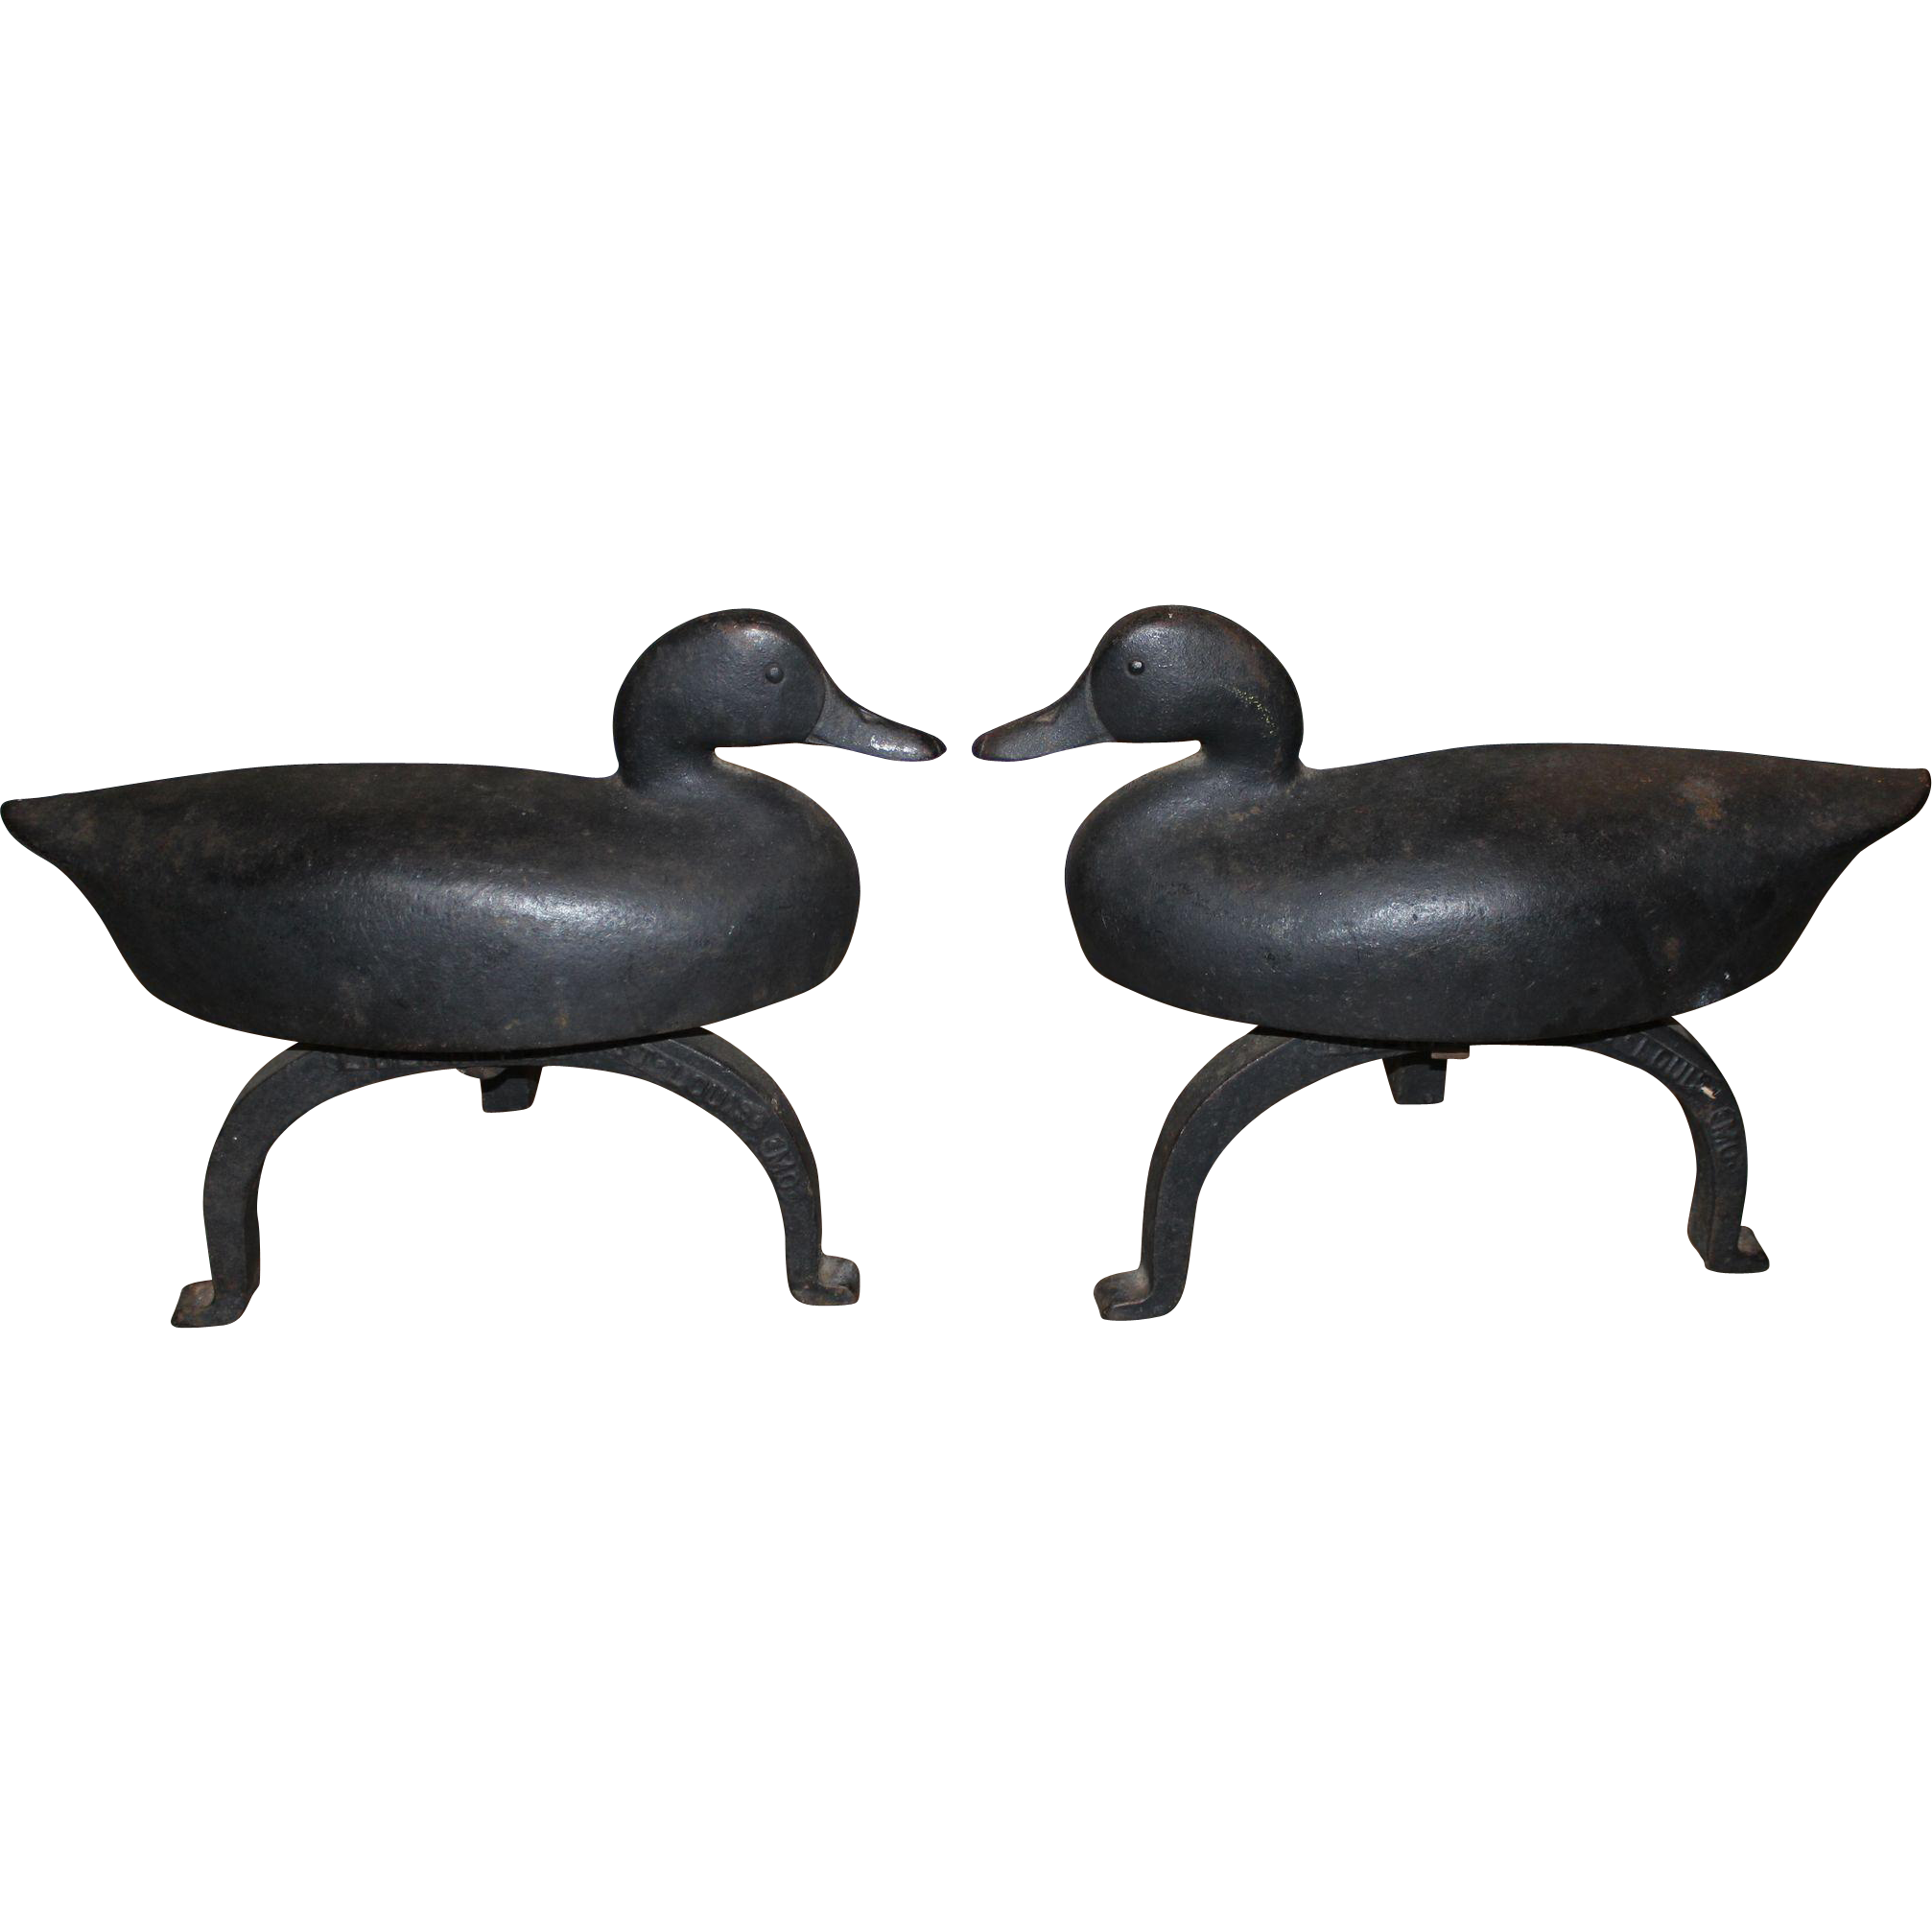 Pair of Cast Iron Duck Andirons - Liberty Foundry, St. Louis MO circa 1930